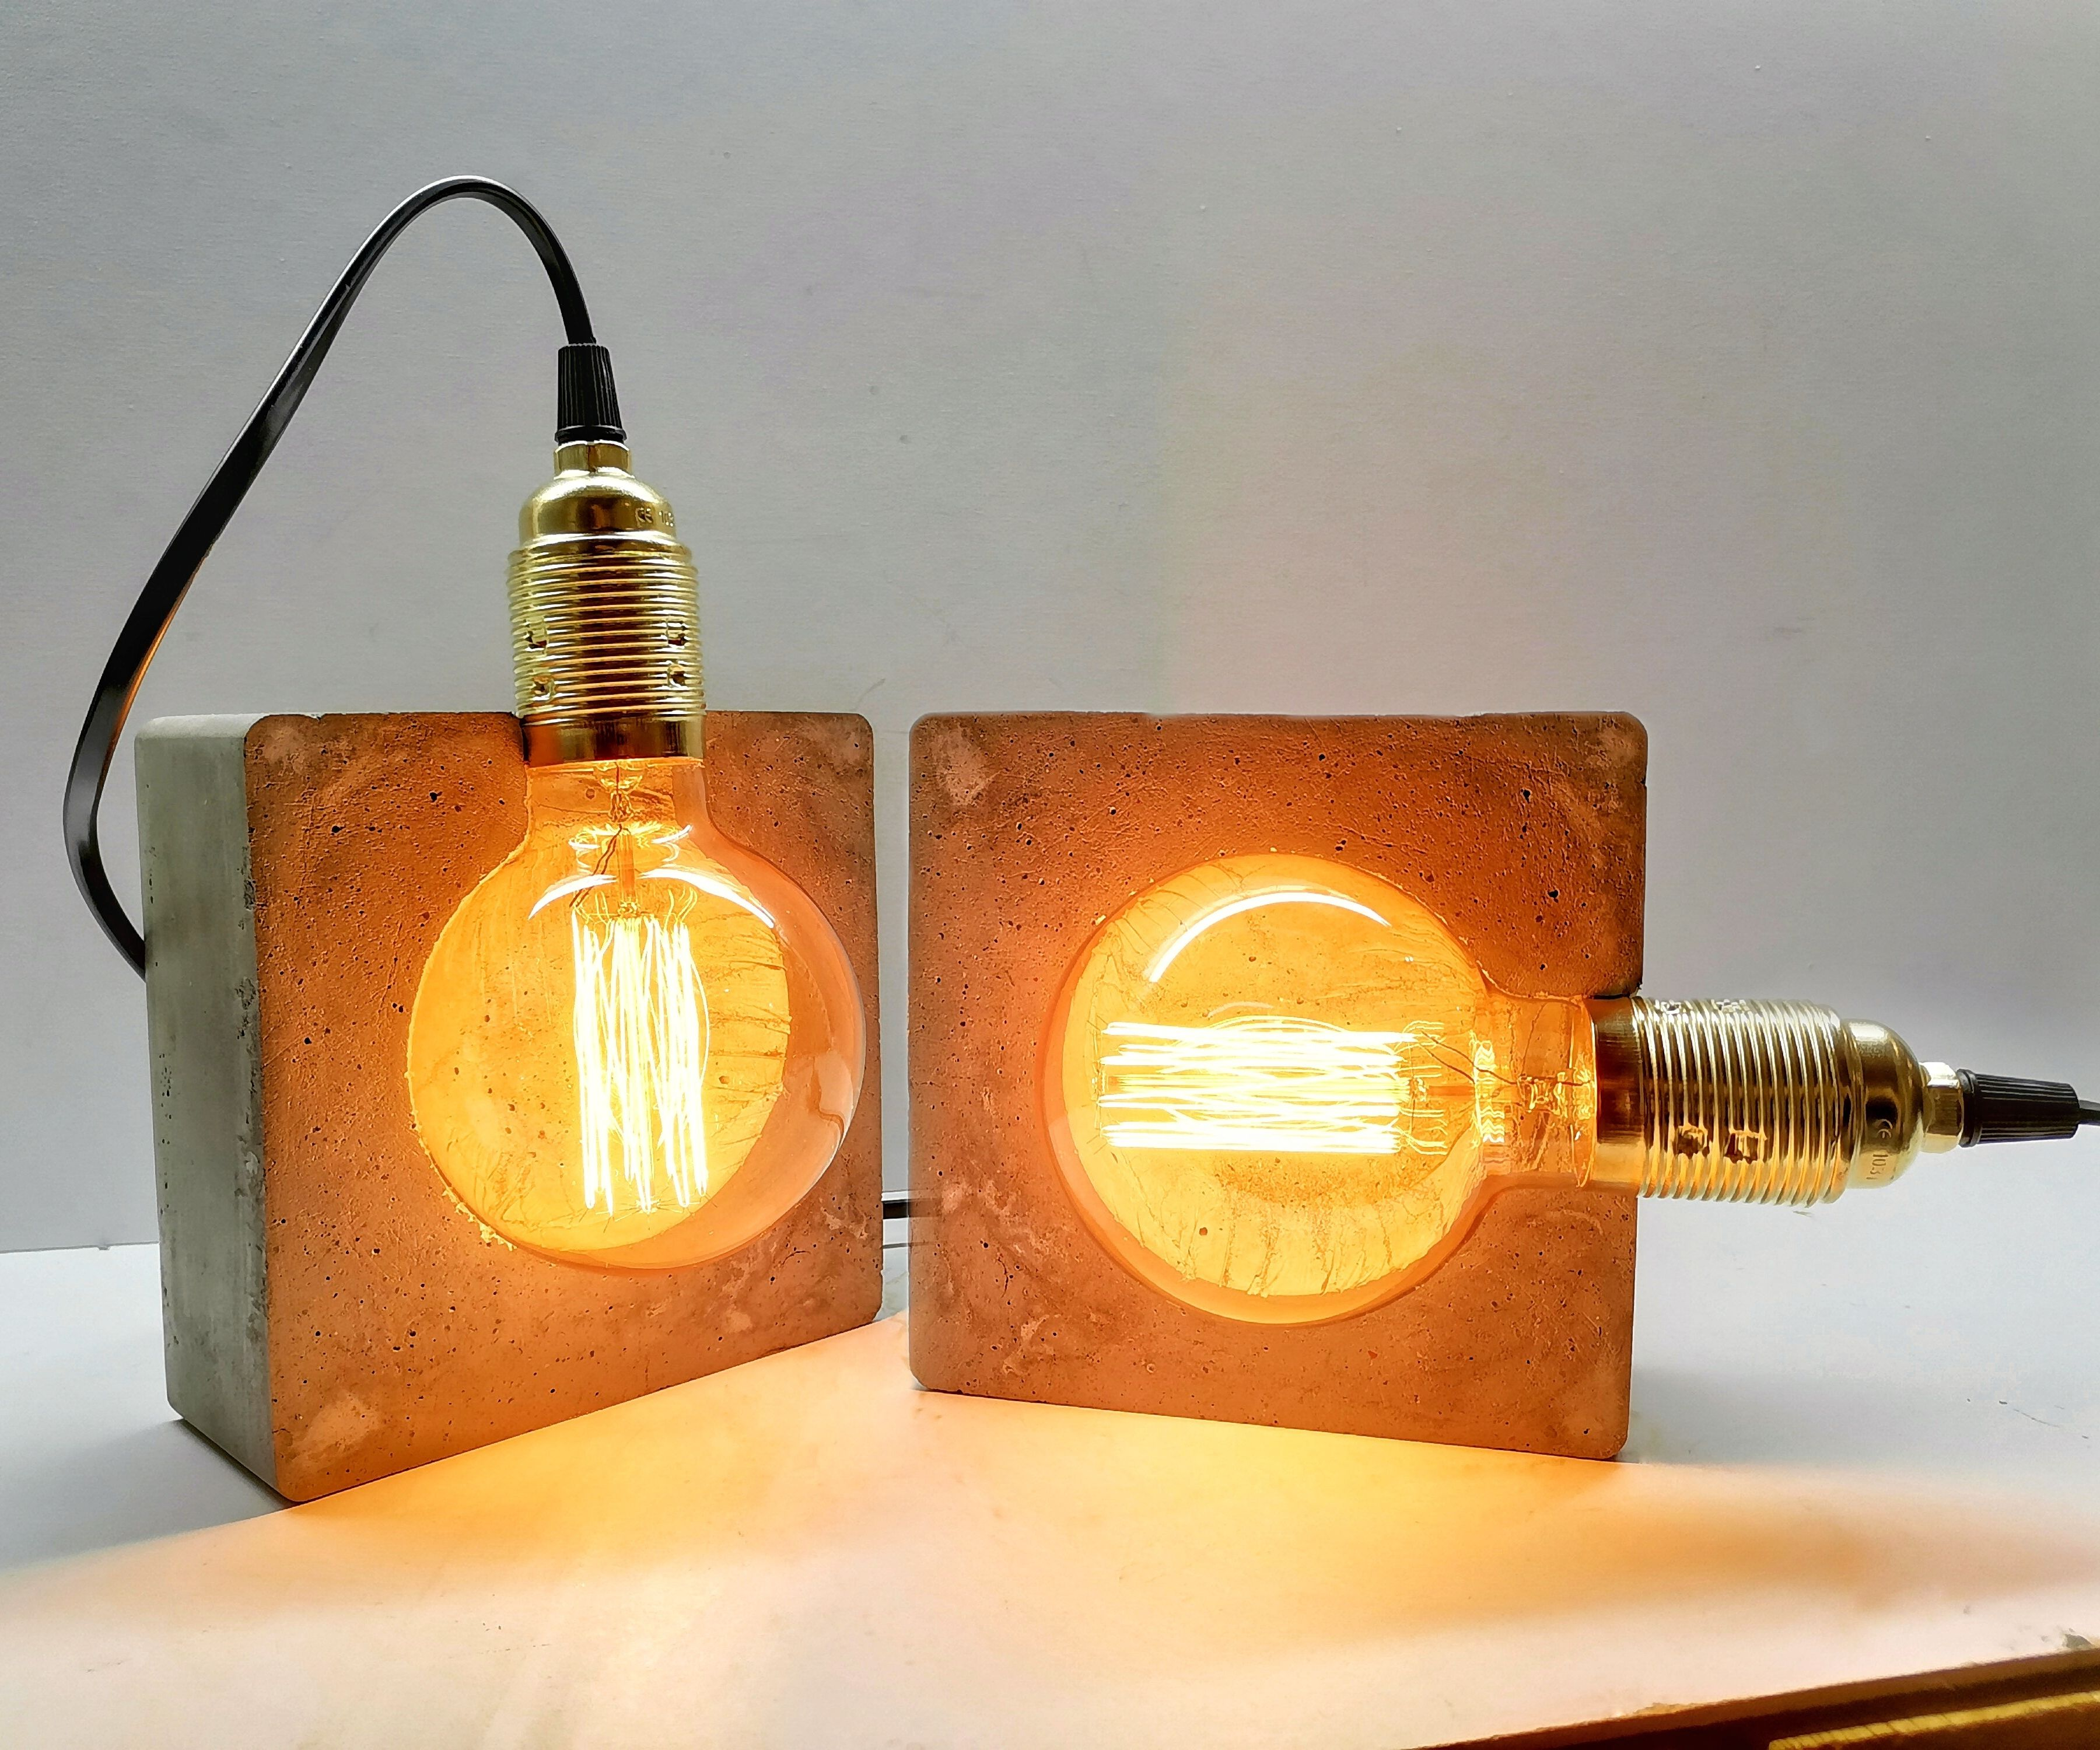 How to Make a Concrete Lamp?